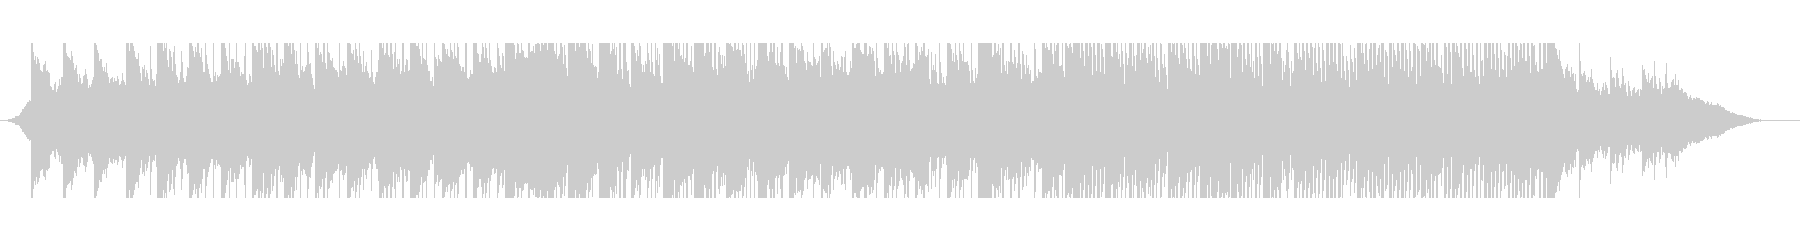 Positive corporate music full's unreproduced waveform